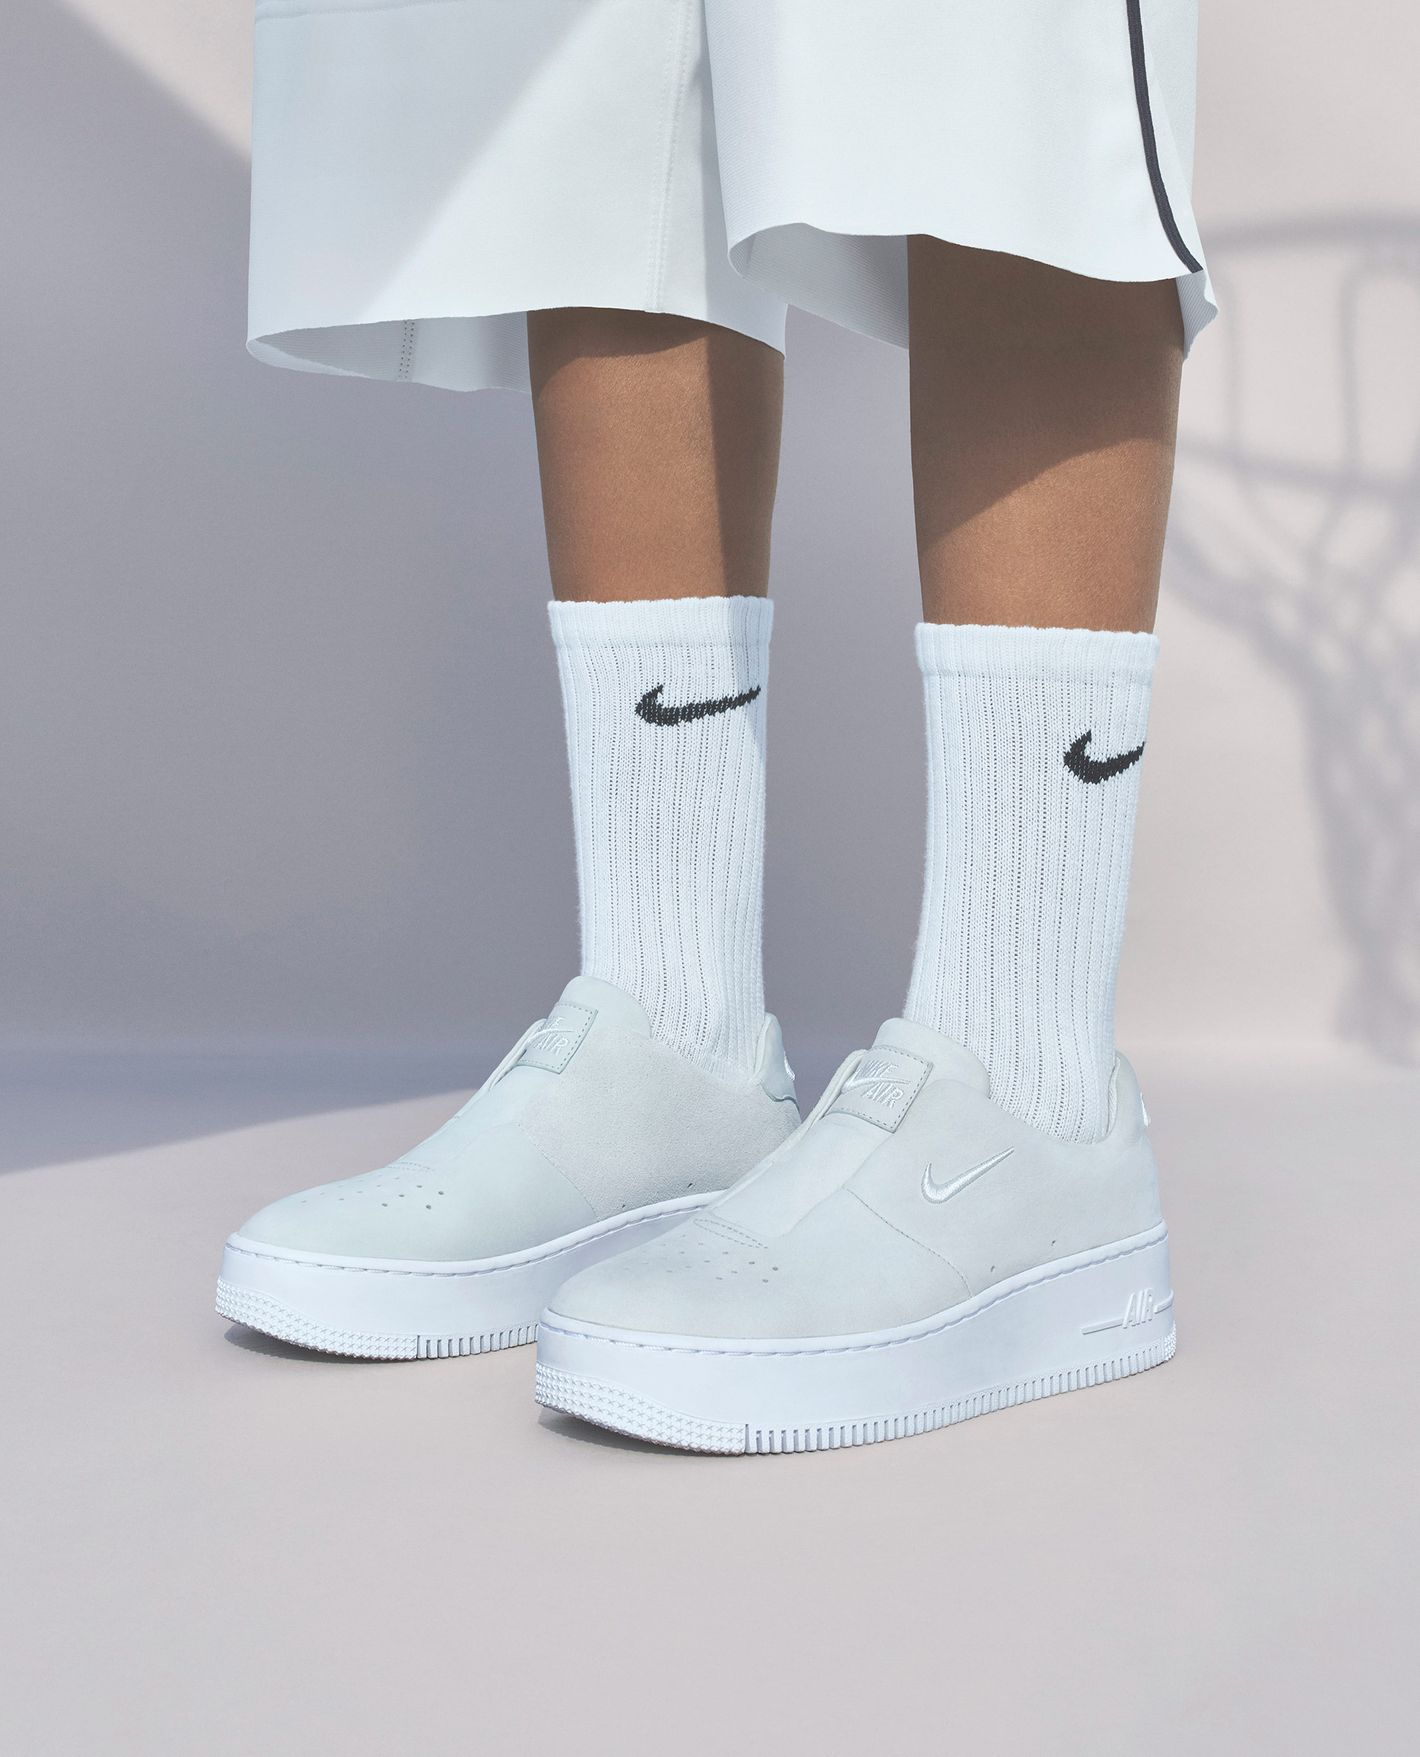 e51f108c27dccd See Nike s New Reimagined 1 Women s Sneaker Collection